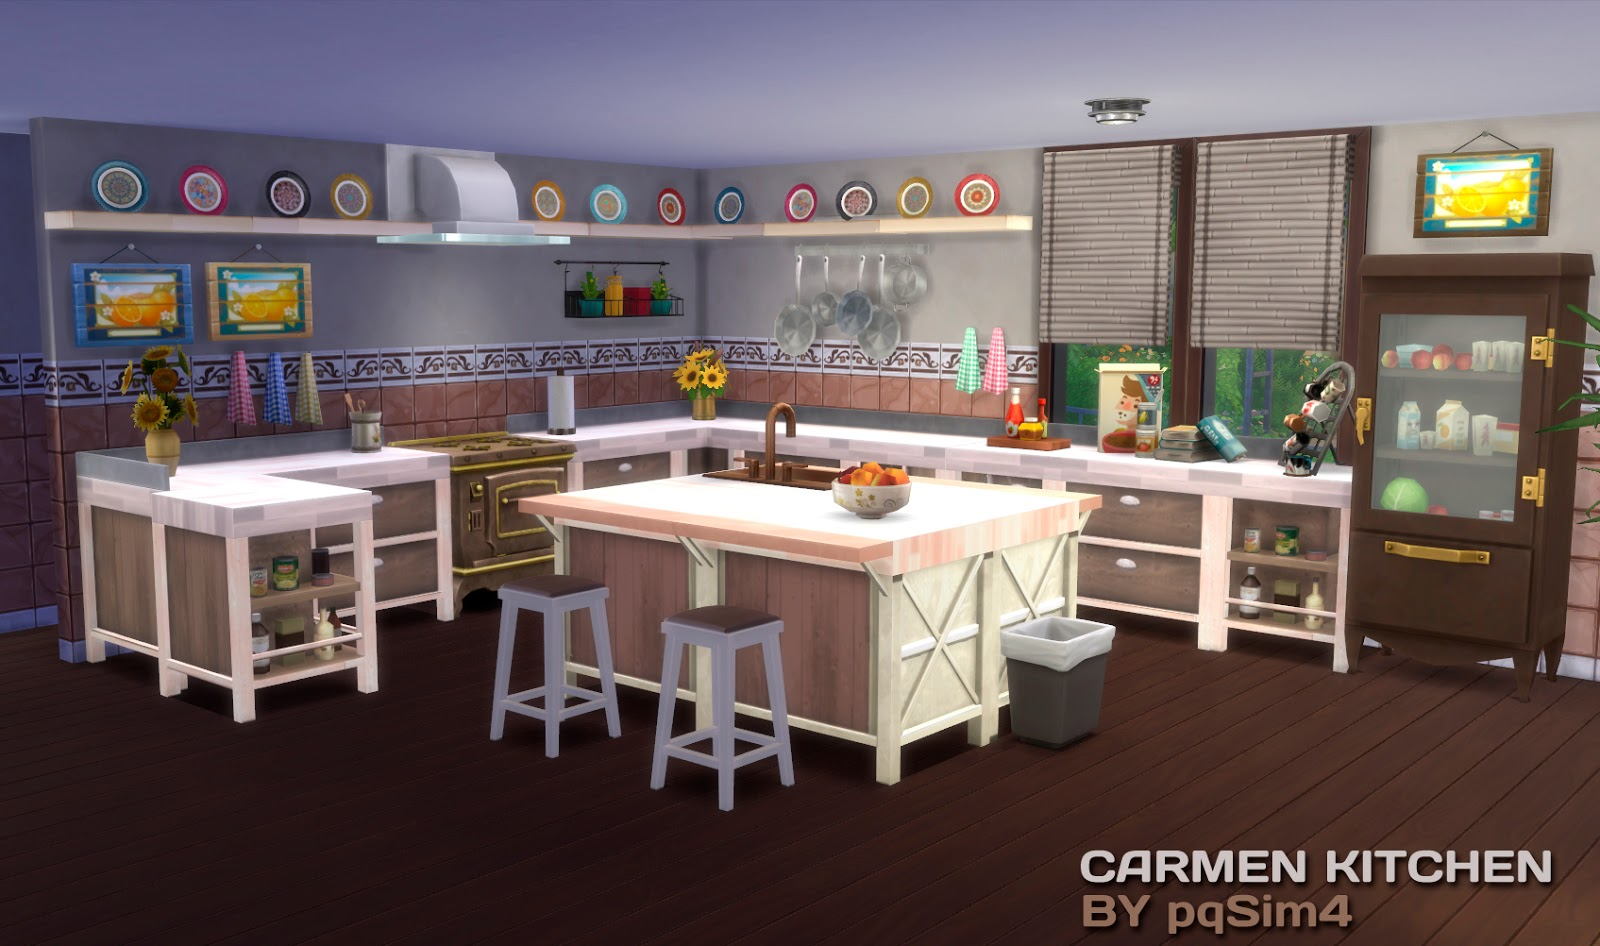 Carmen Kitchen by PqSim4